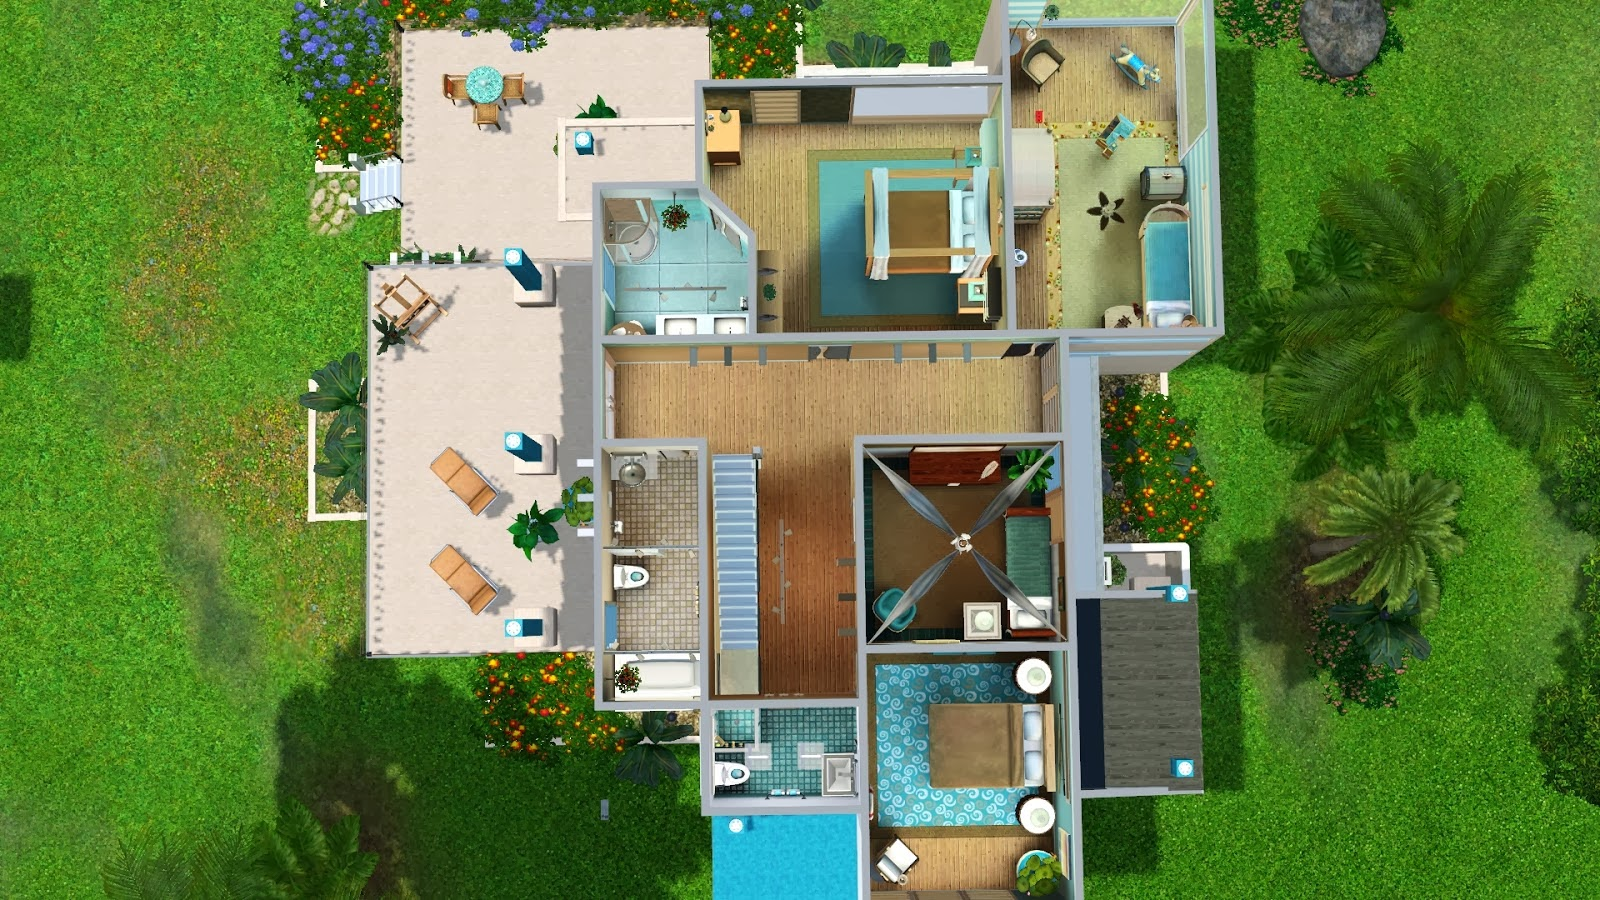 My sims 3 blog turquoise bay modern by ruth kay for Mansion floor plans sims 4